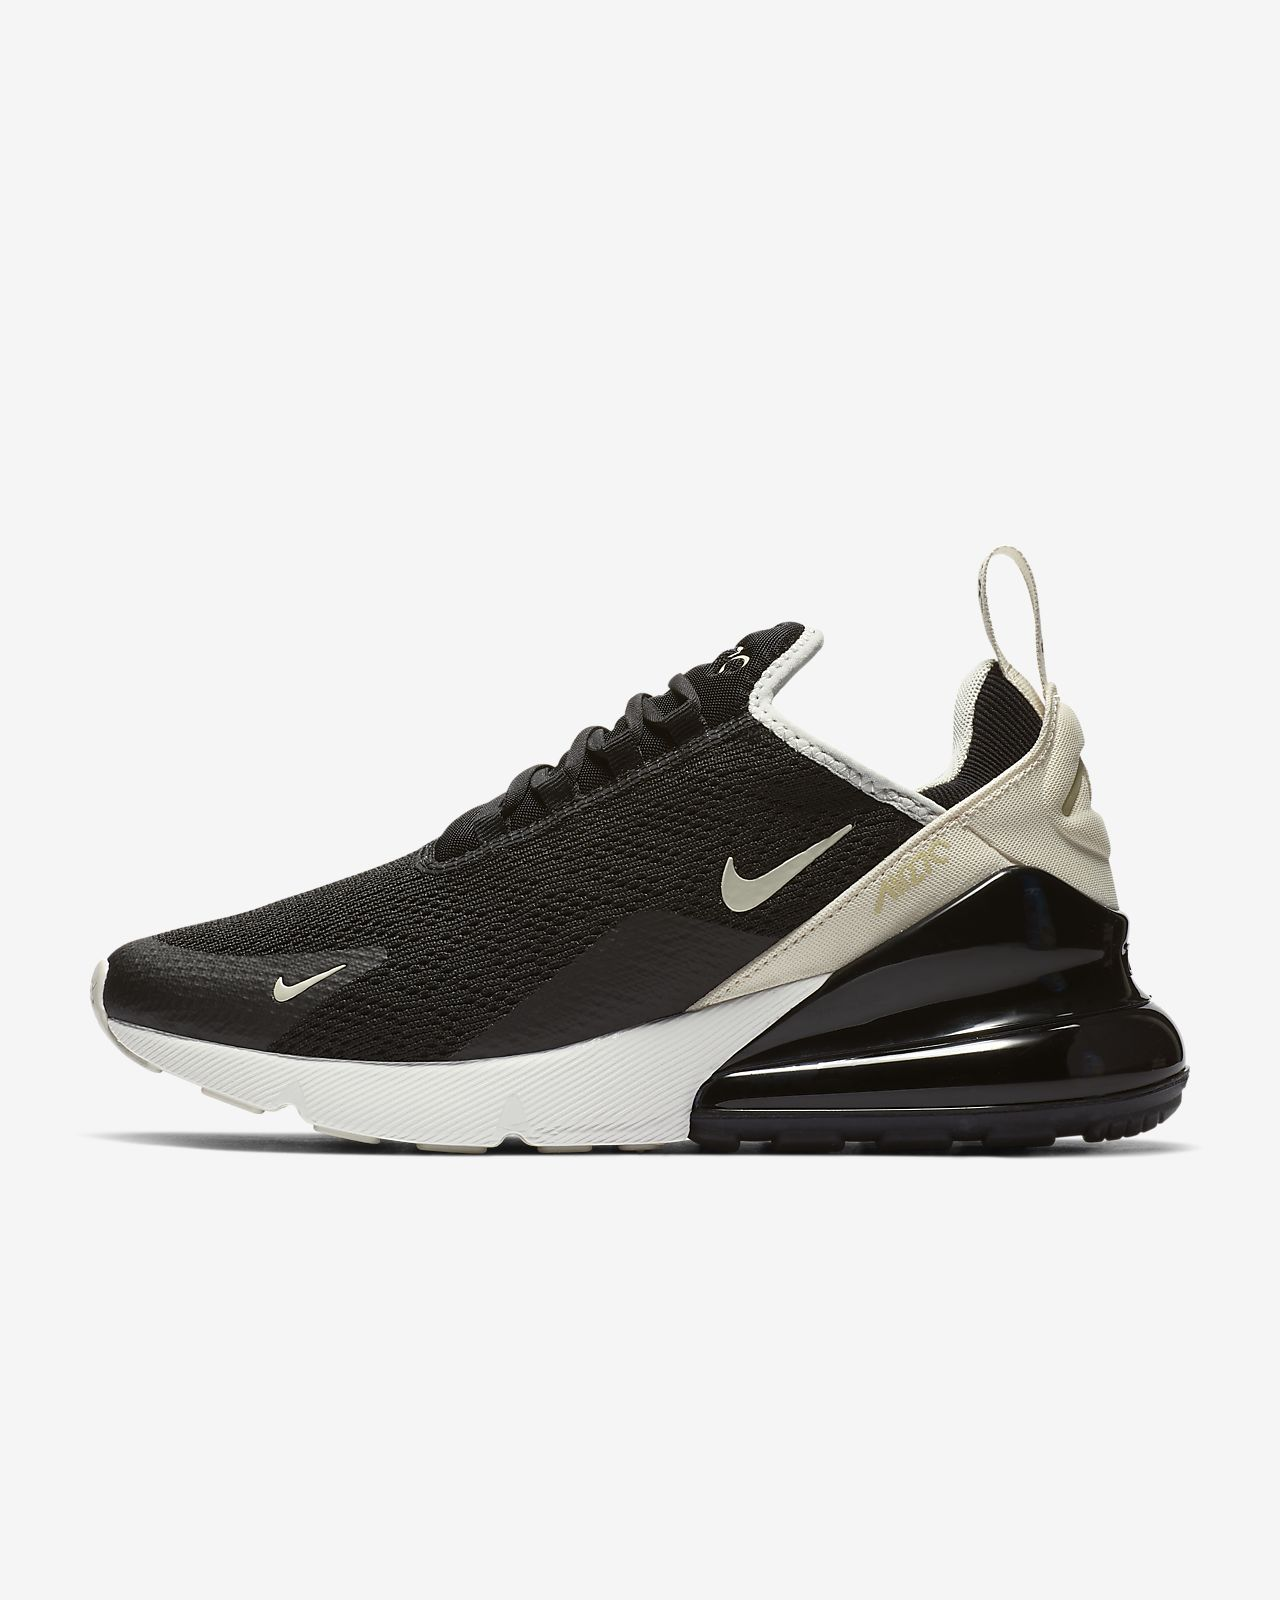 in stock f74bf 1a6ff Women s Shoe. Nike Air Max 270